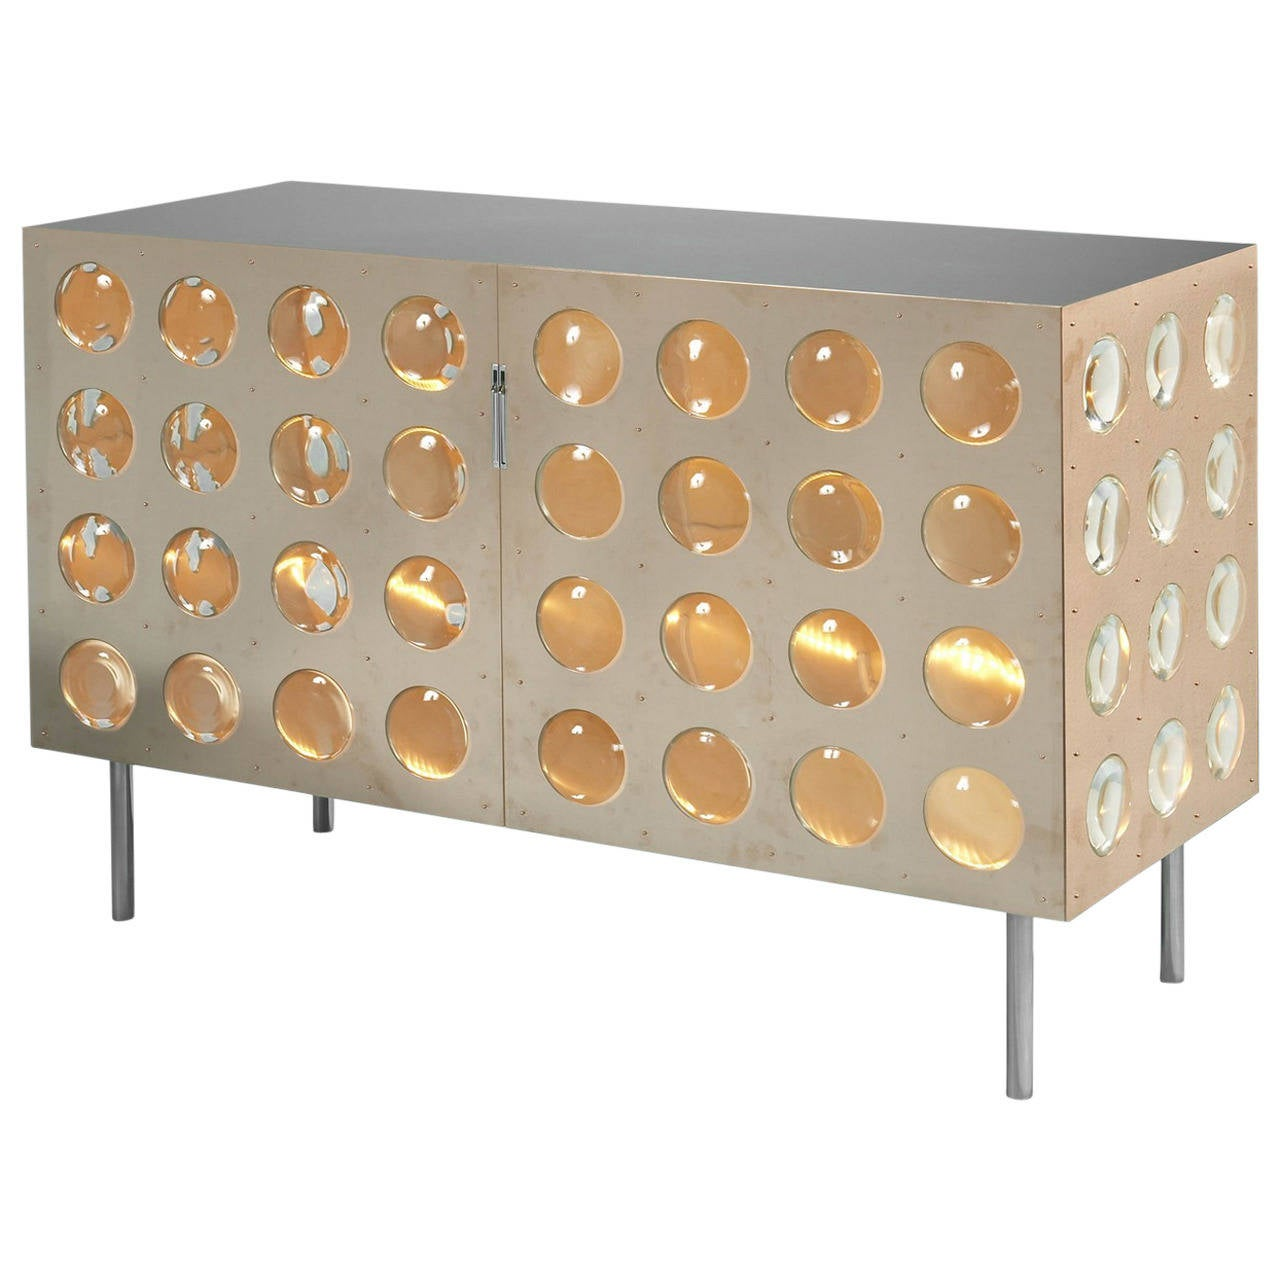 SPINOZA Sideboard by Patrick Naggar 1